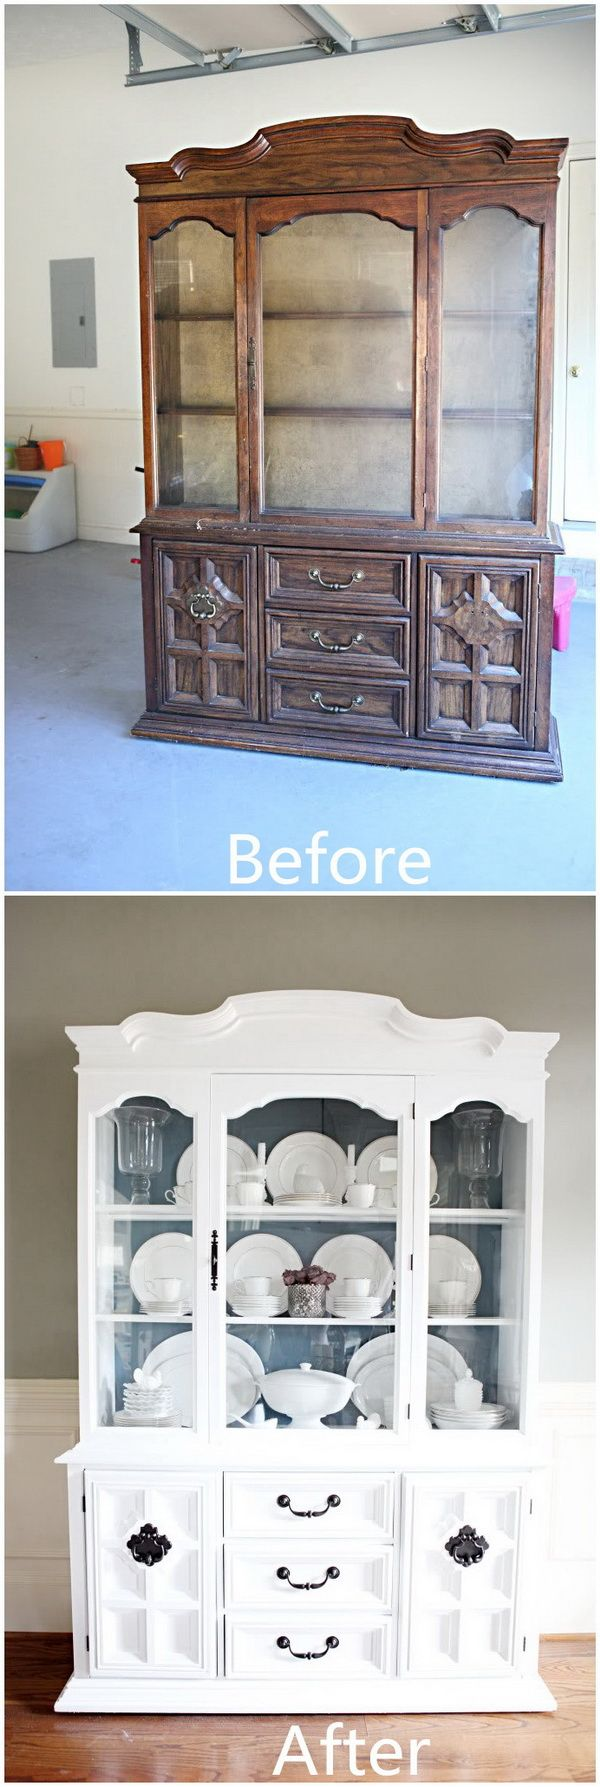 Diy furniture painting ideas - Best Of Before After Furniture Makeovers Creative Diy Ways To Repurpose Your Old Furniture